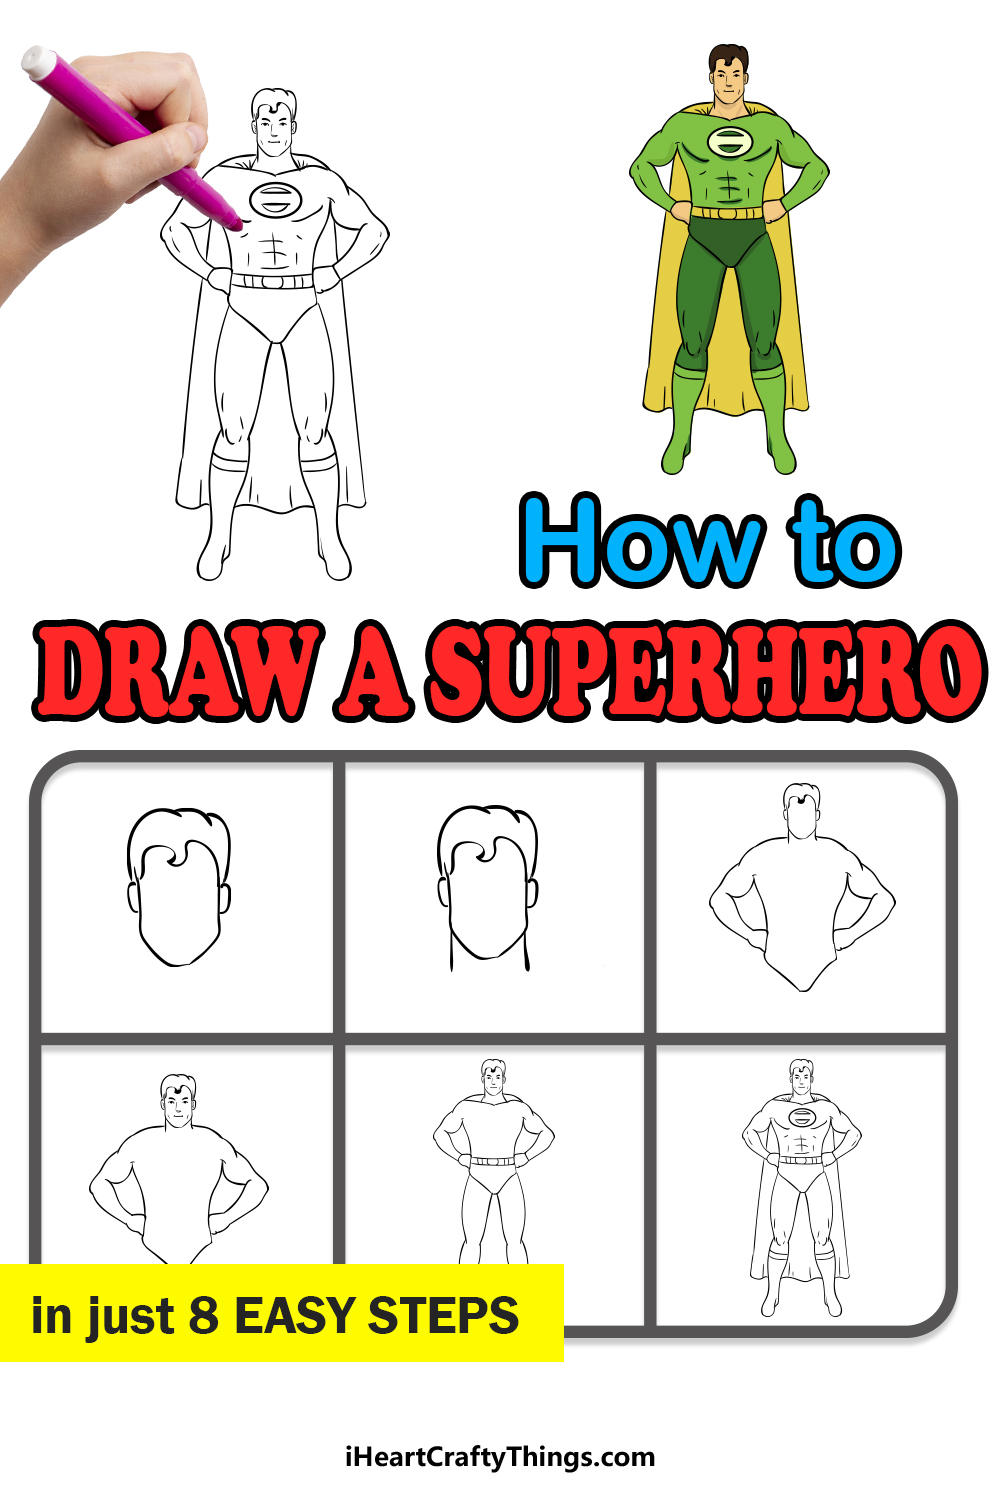 how to draw a superhero in 8 easy steps